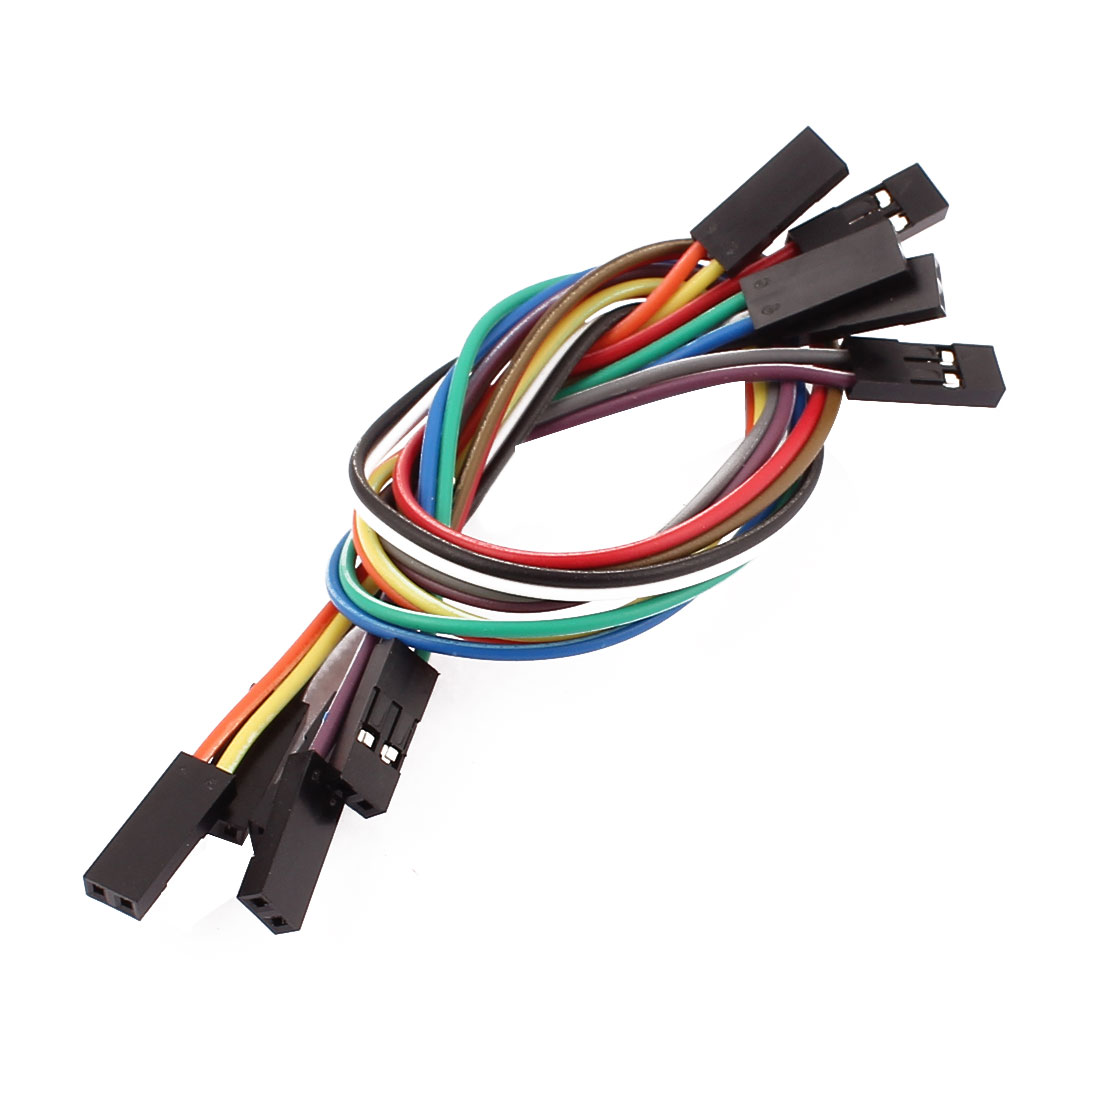 5 Pcs Female to Female 2P Jumper Wires Ribbon Cables Pi Pic Breadboard DIY 20cm Long